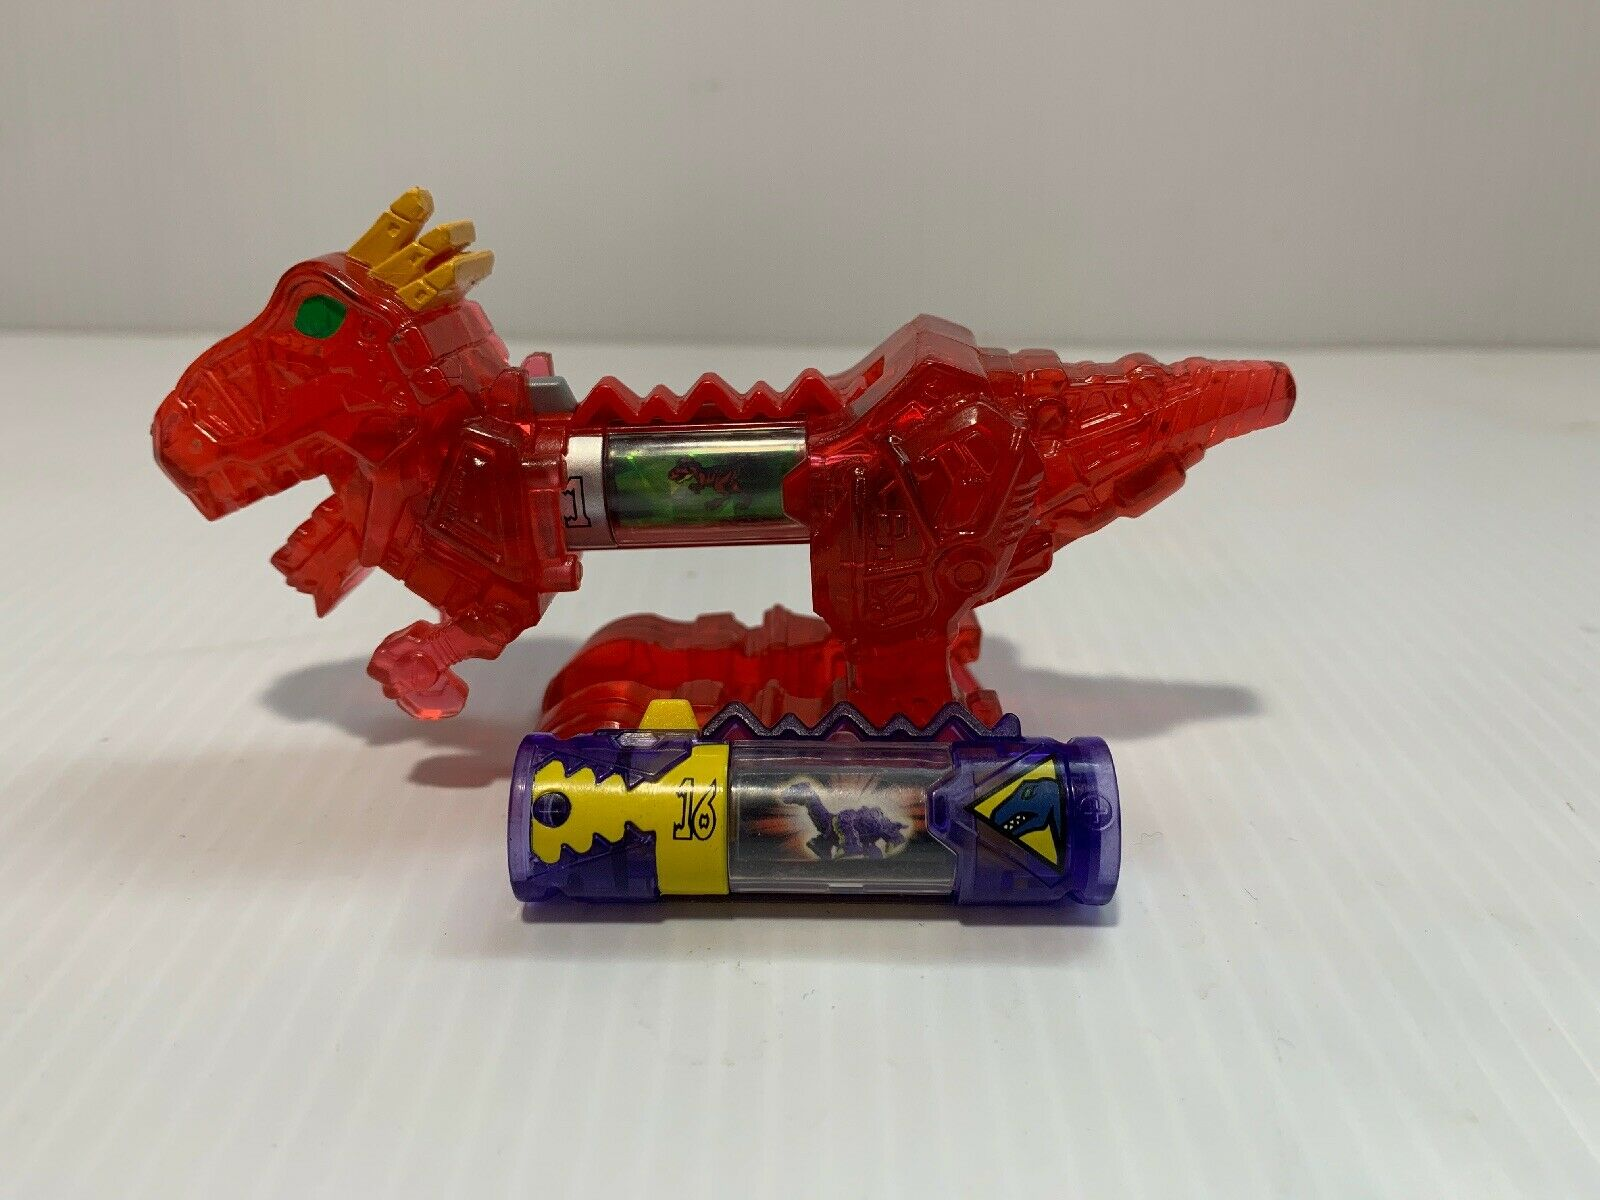 energia Rangers Dino Charge Dino Charger energia Pack rosso TRex 42270 Series 2